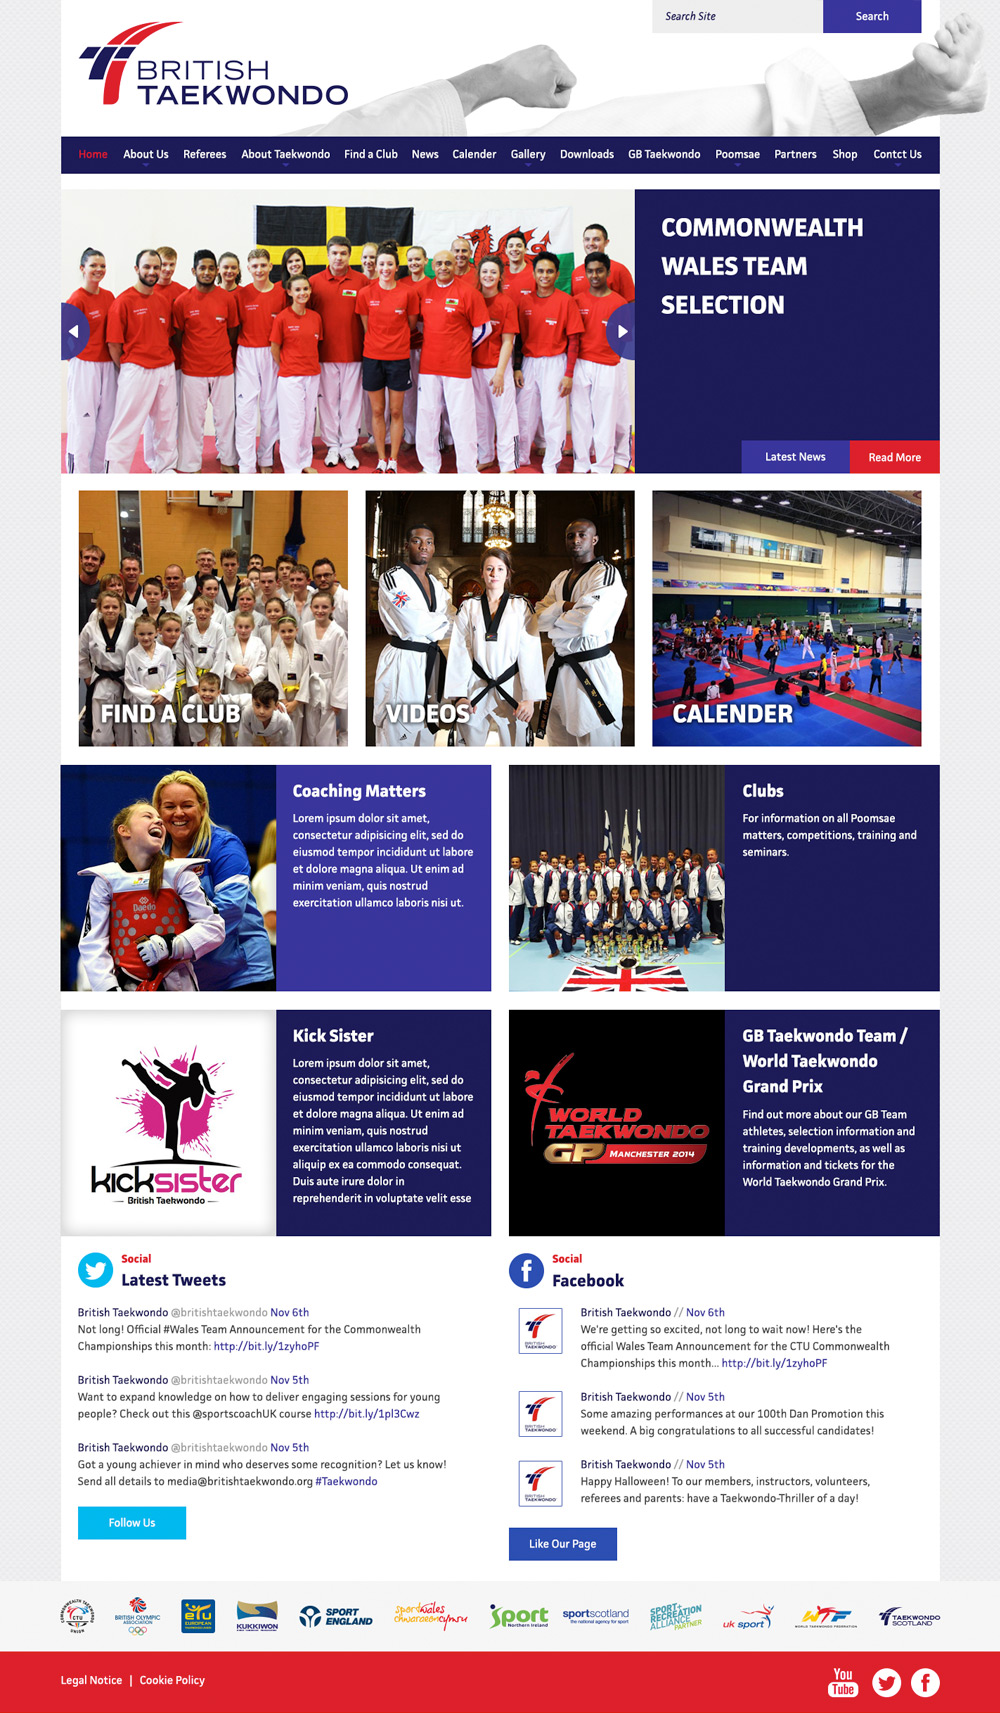 British Taekwondo Web Site Development